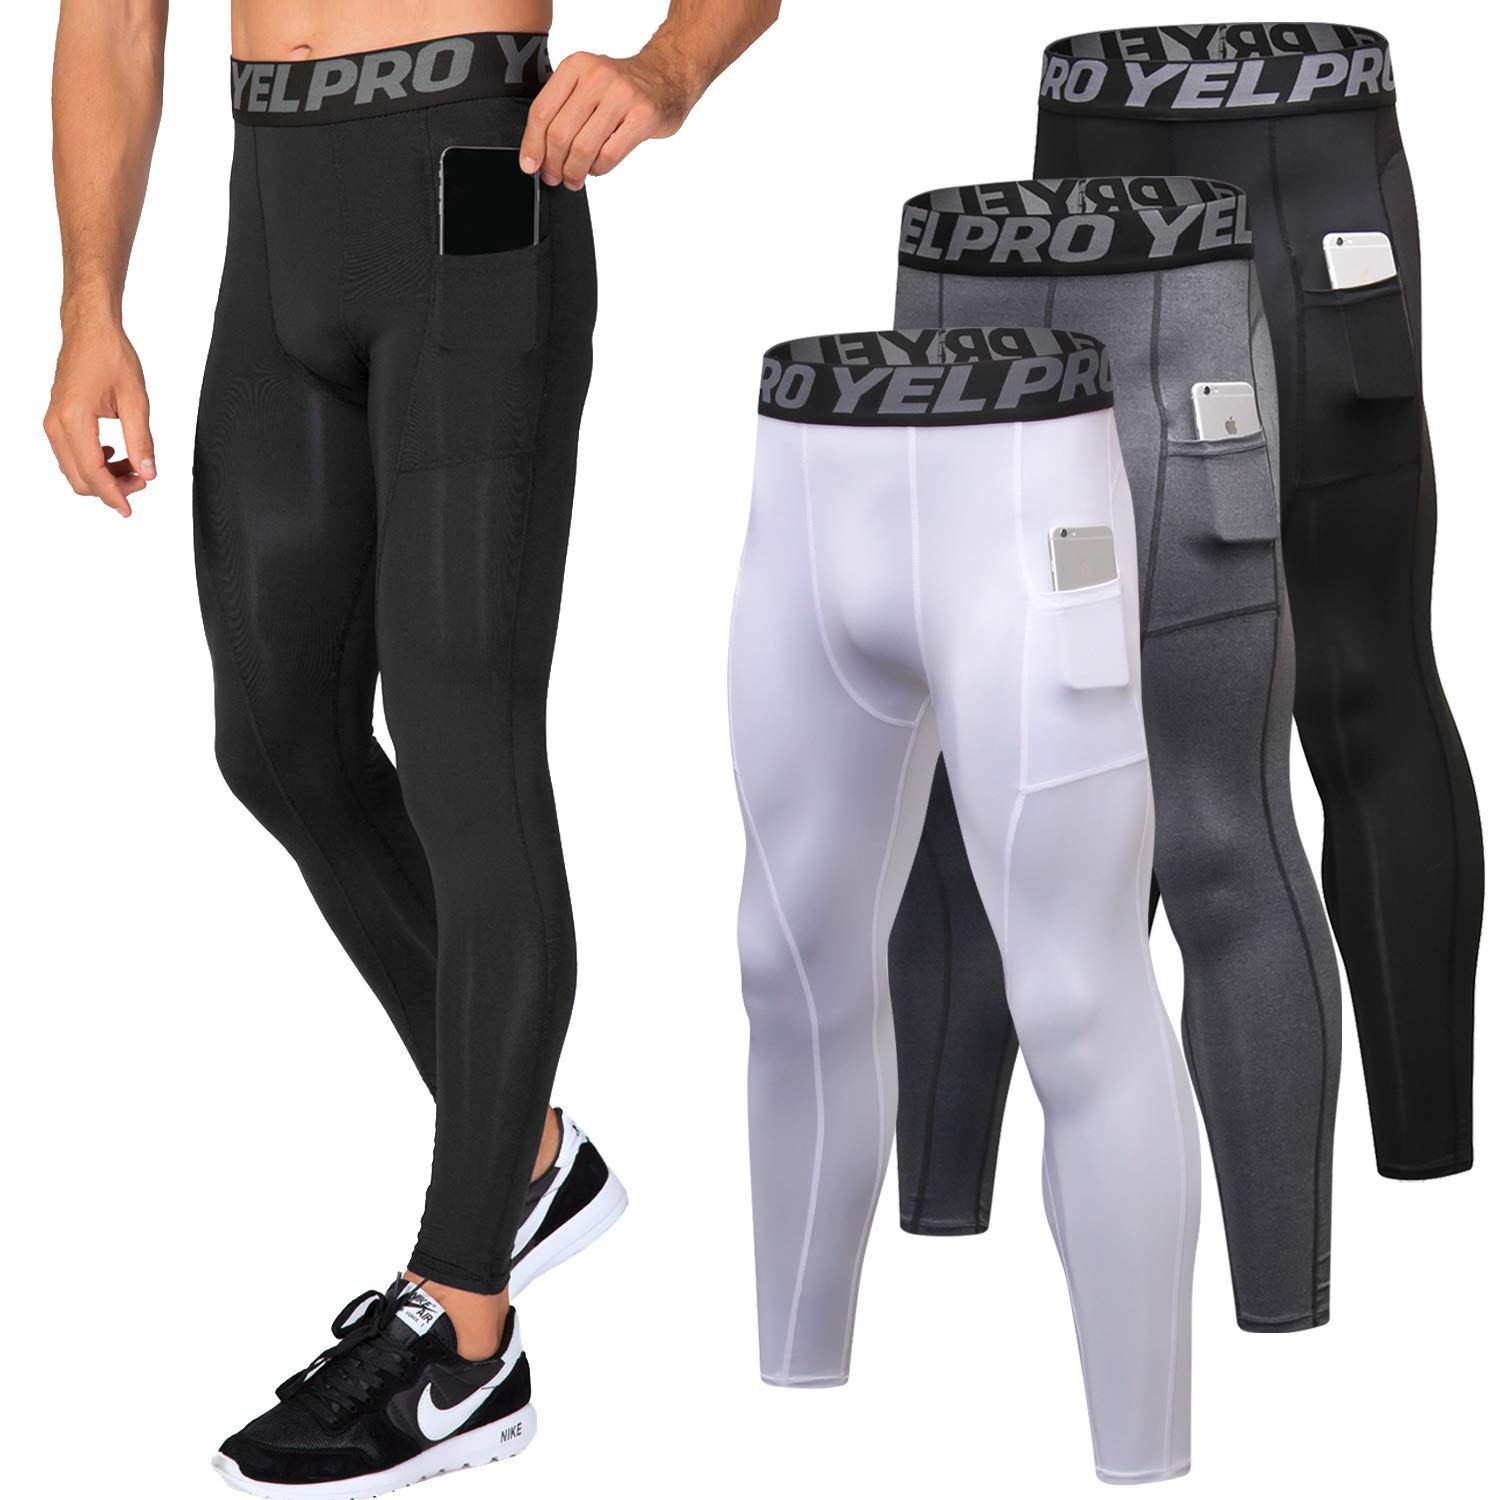 Lavento Men's Compression Pants Baselayer Cool Dry Pocket Running Ankle Leggings Active Tights (3 Pack-3911 Black/Gray/White,Small) by Lavento